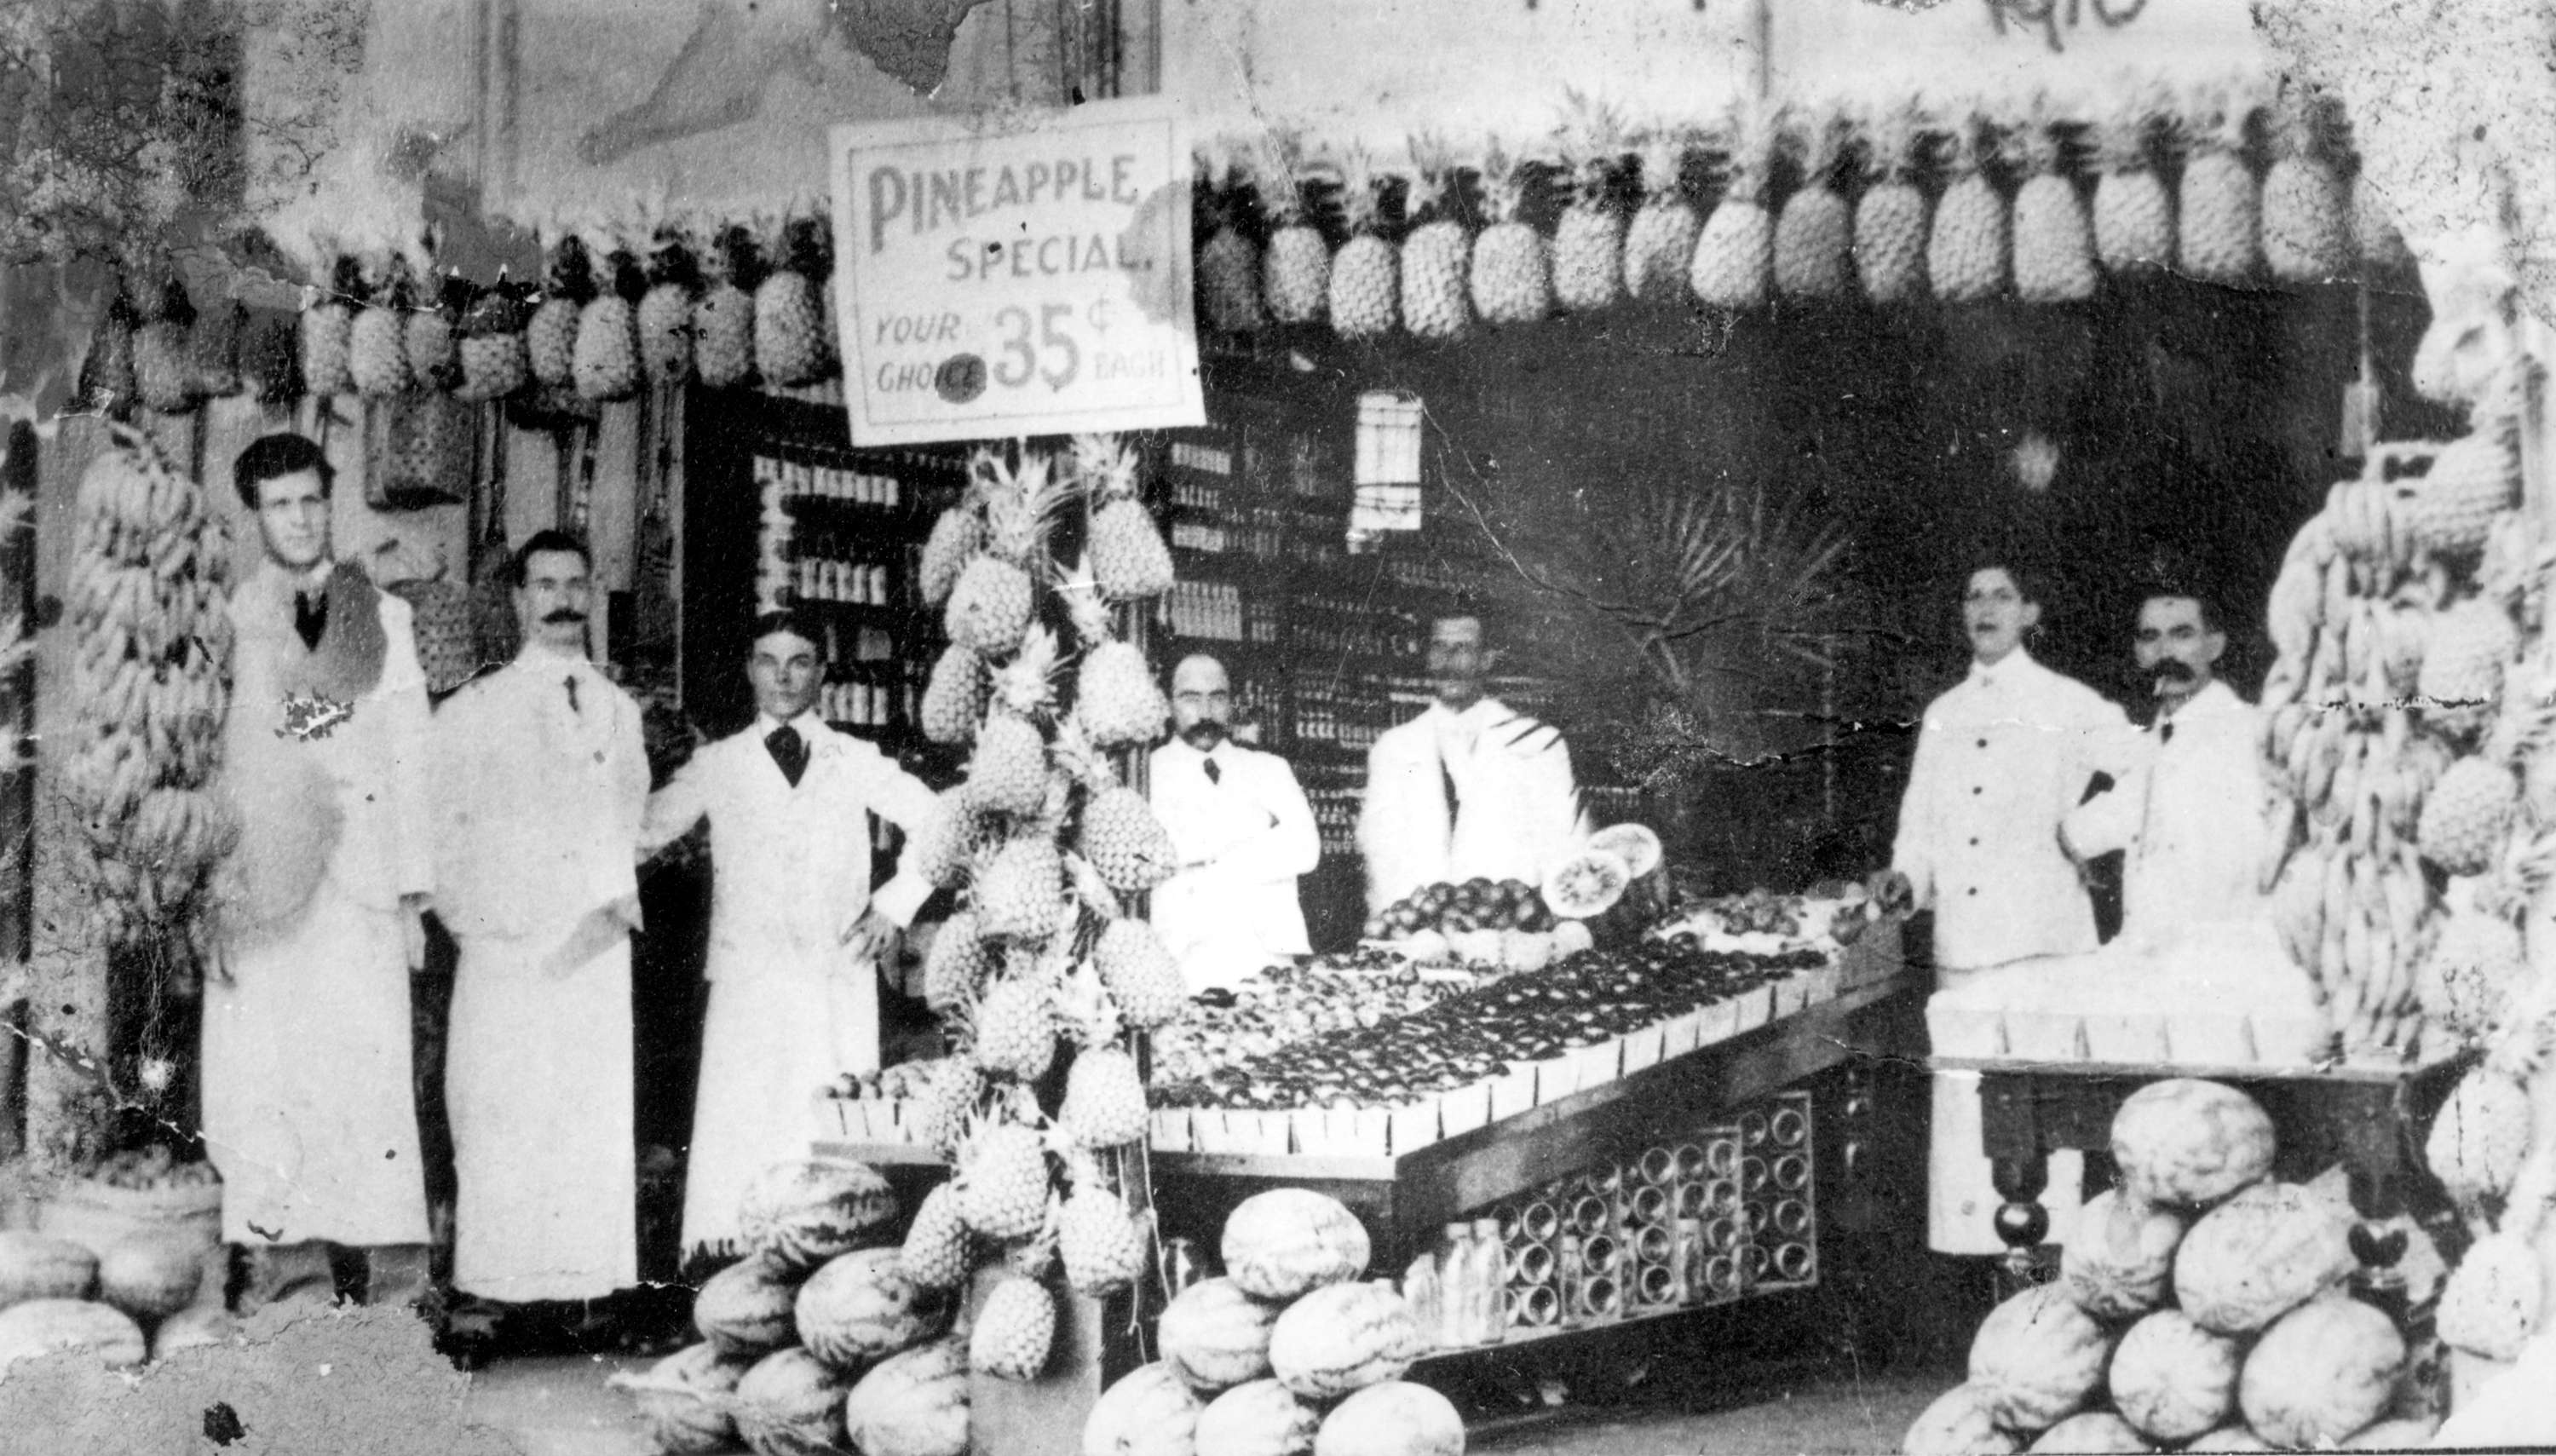 Inside the fruit department of Woodward's Department Store in 1905 (Woodward's Stores Limited)